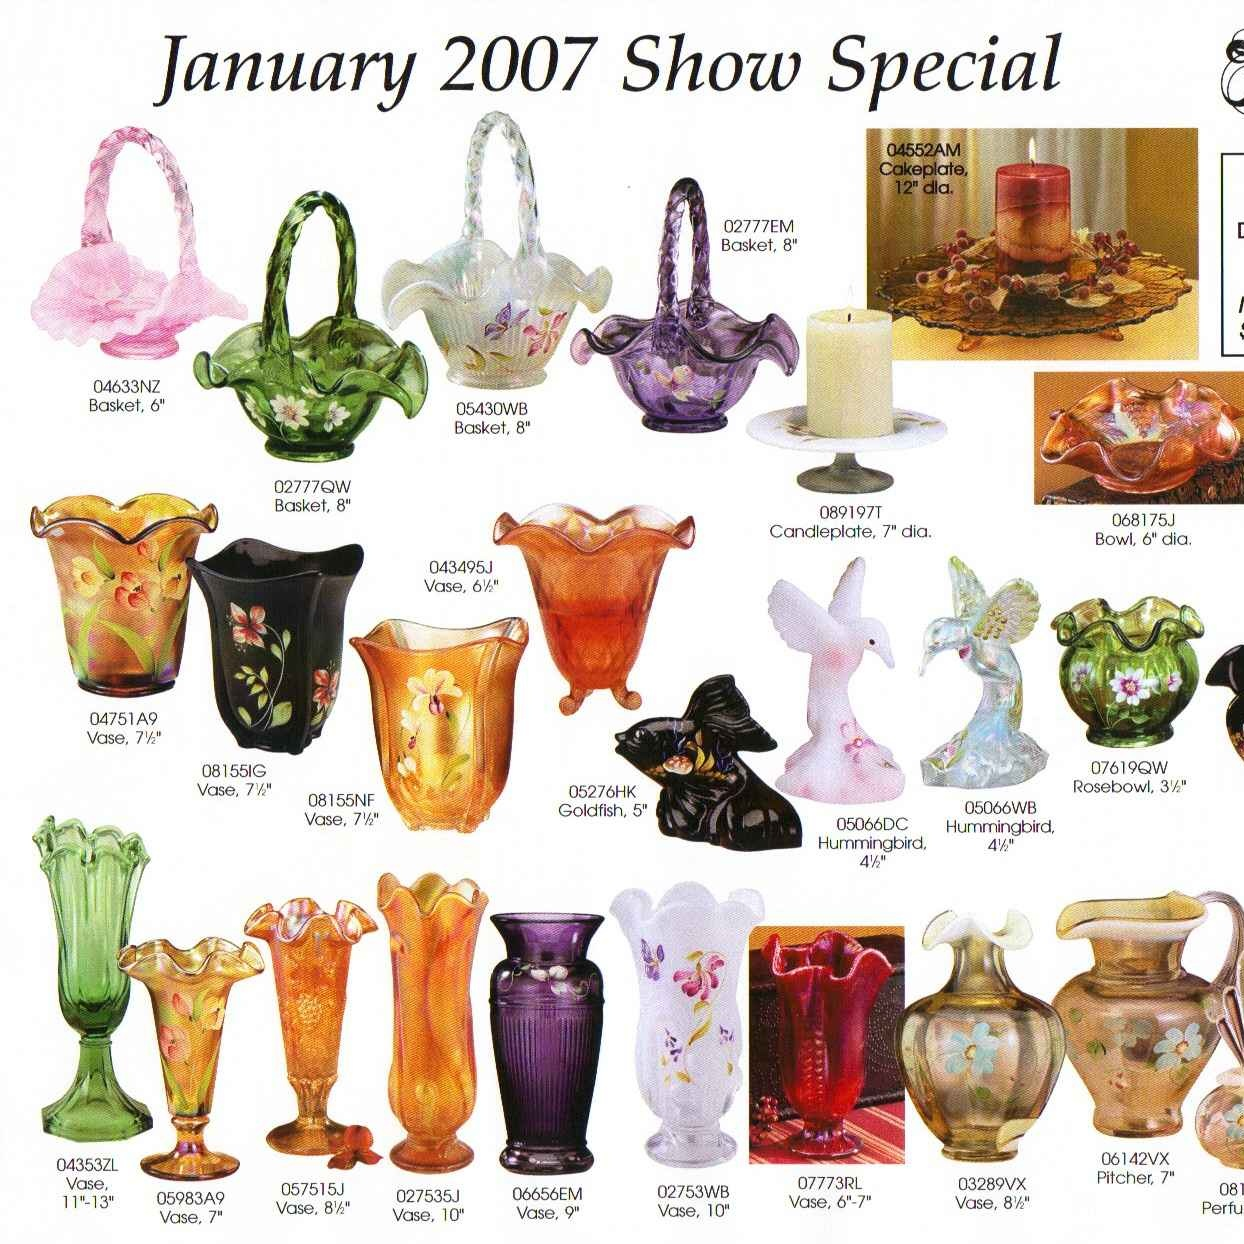 2007 January Show Special